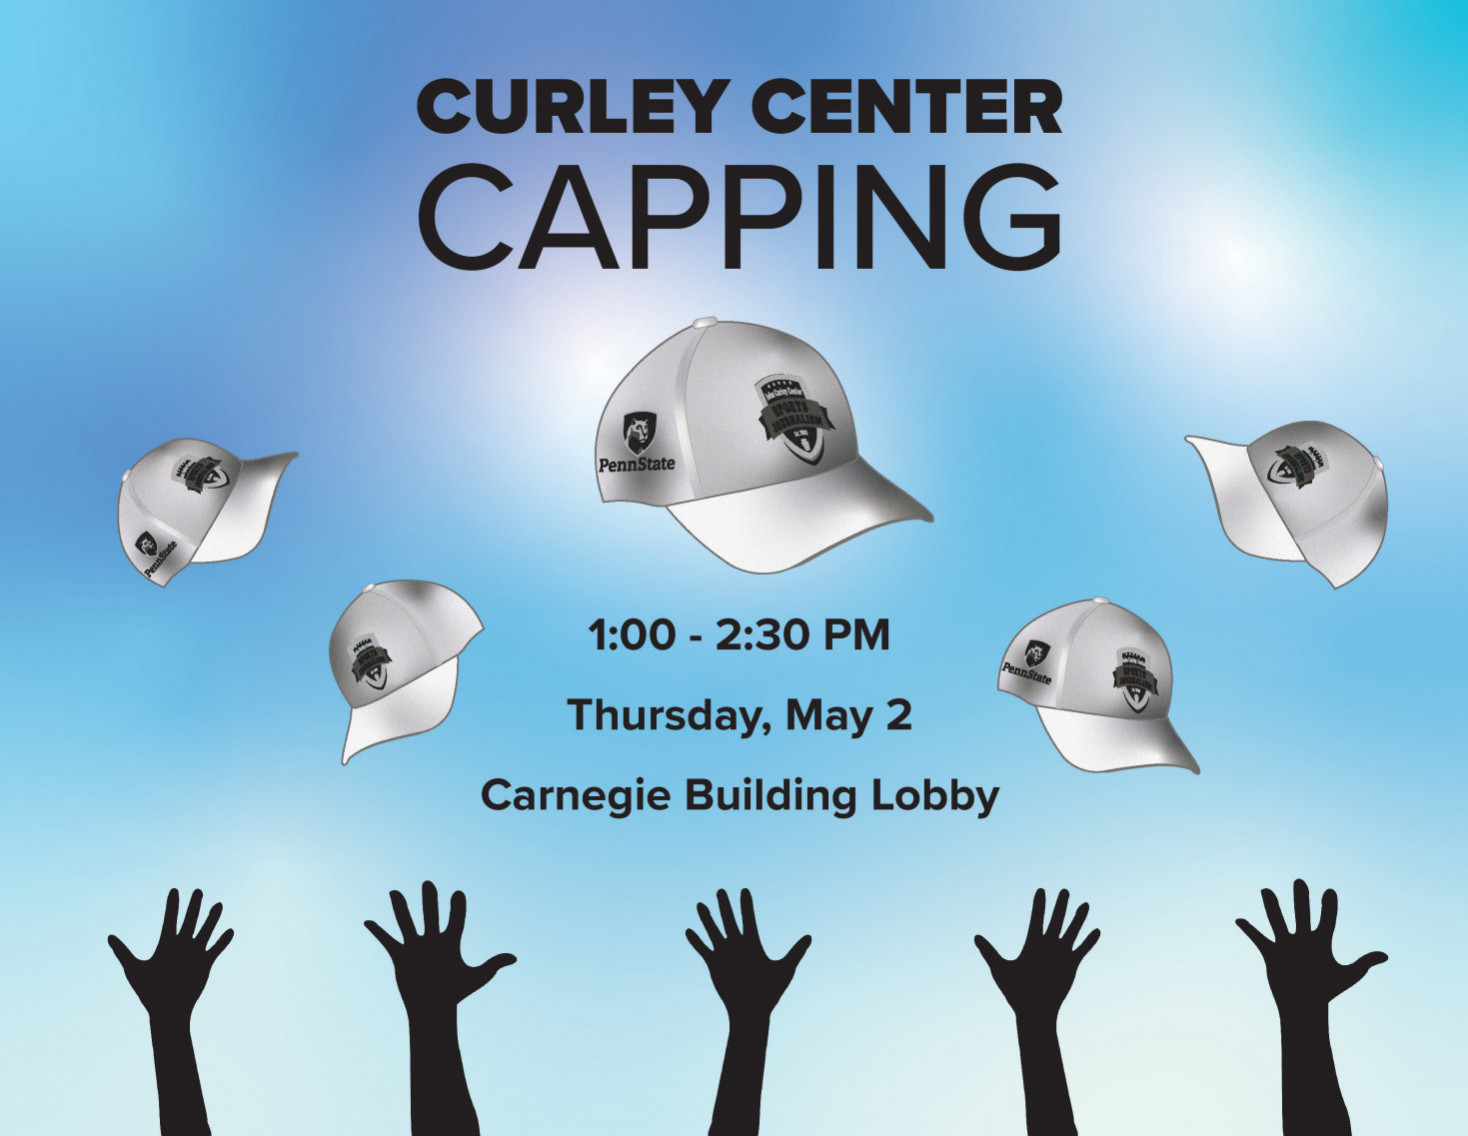 Curley Center Capping